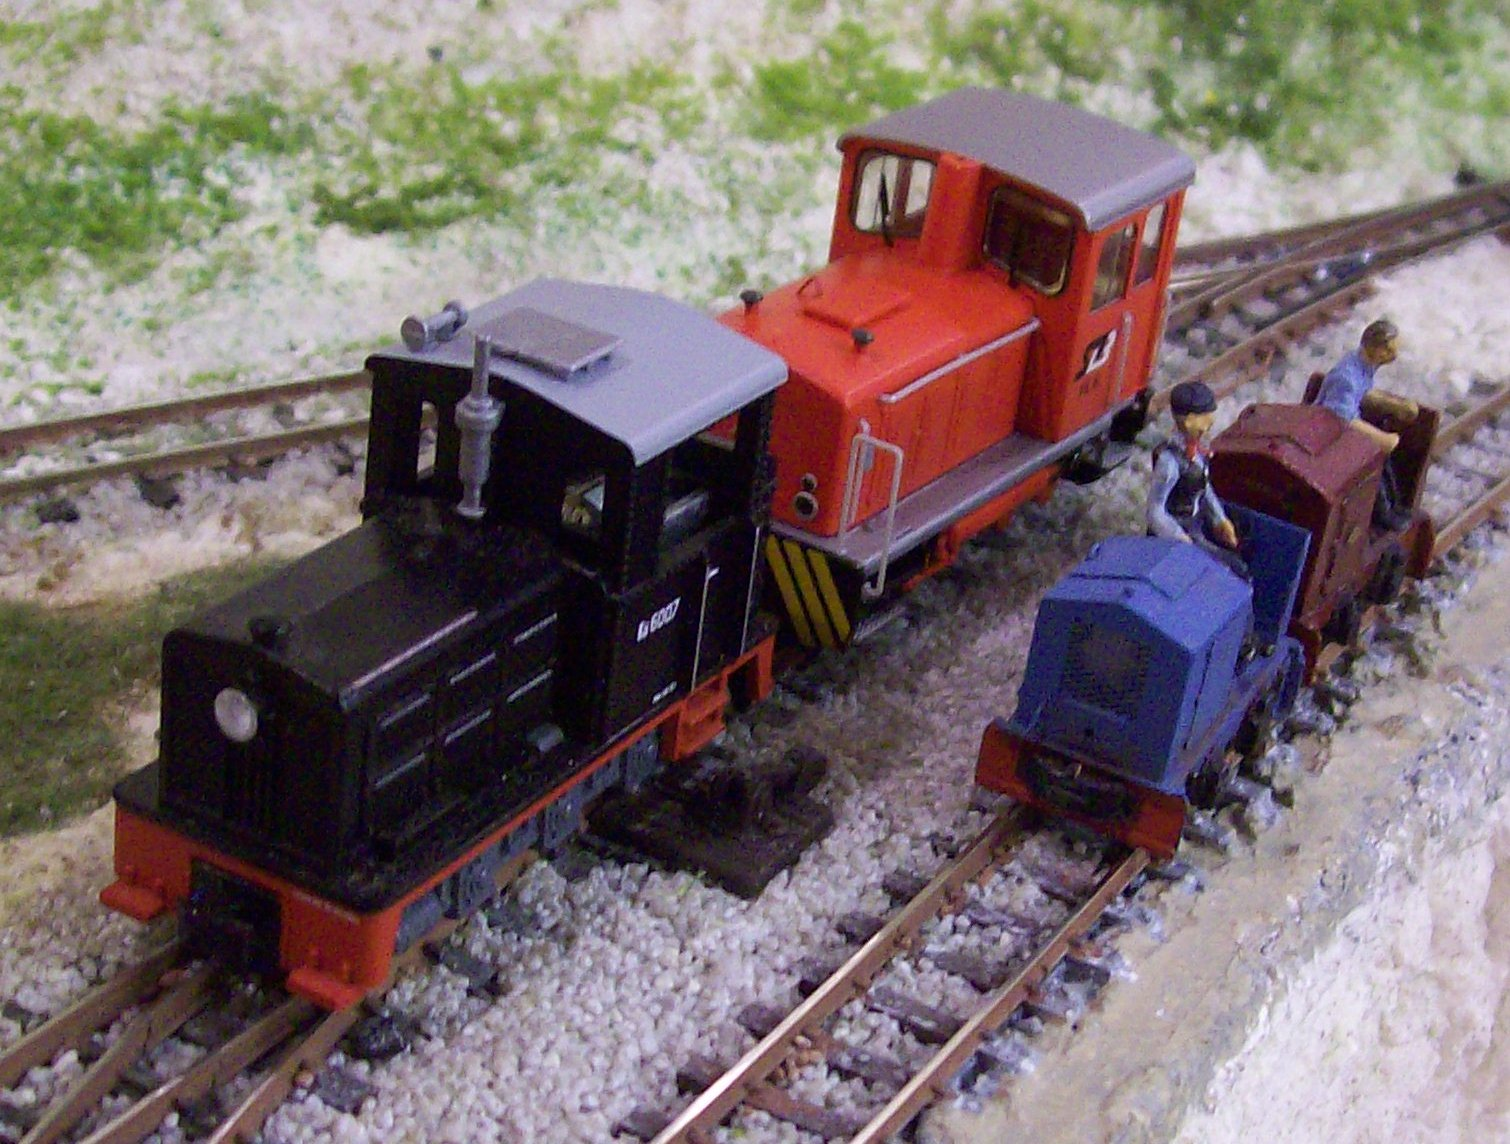 Click for ROCO, Liliput &amp; O&amp;K locomotive size comparison pics